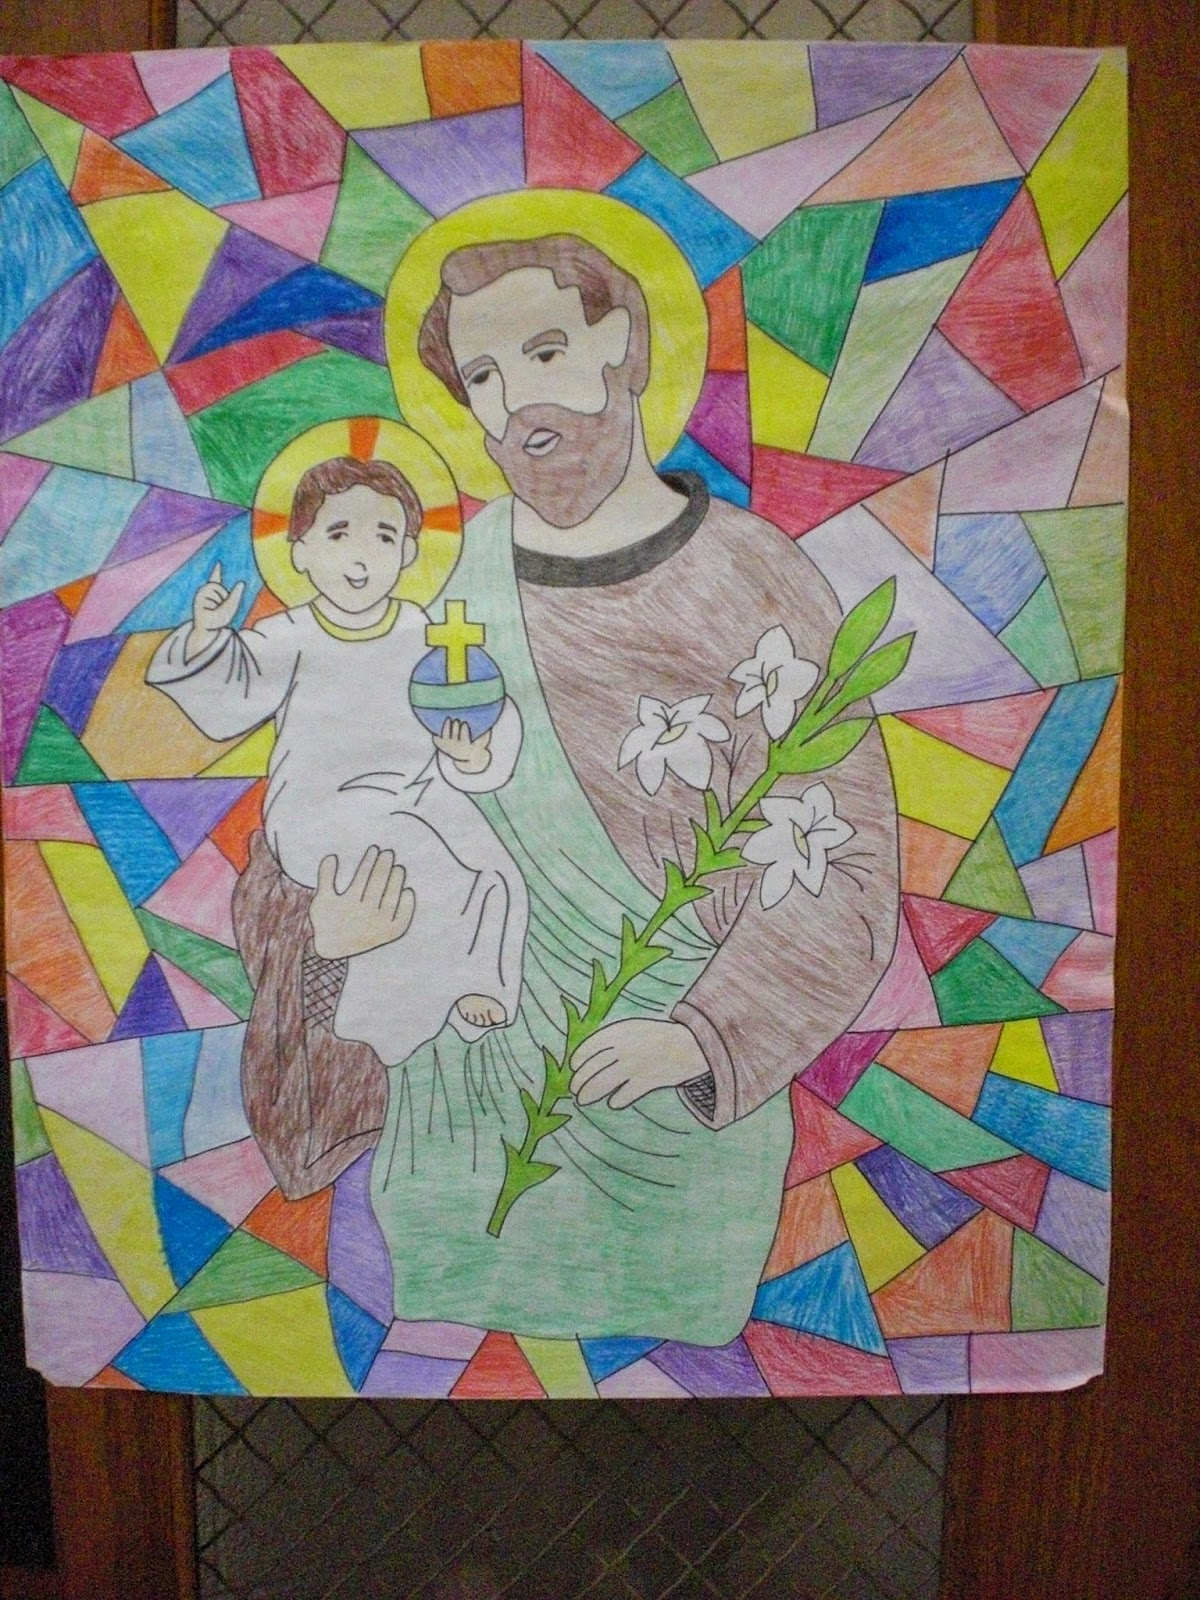 http://looktohimandberadiant.blogspot.com/2014/03/happy-st-joseph-day.html